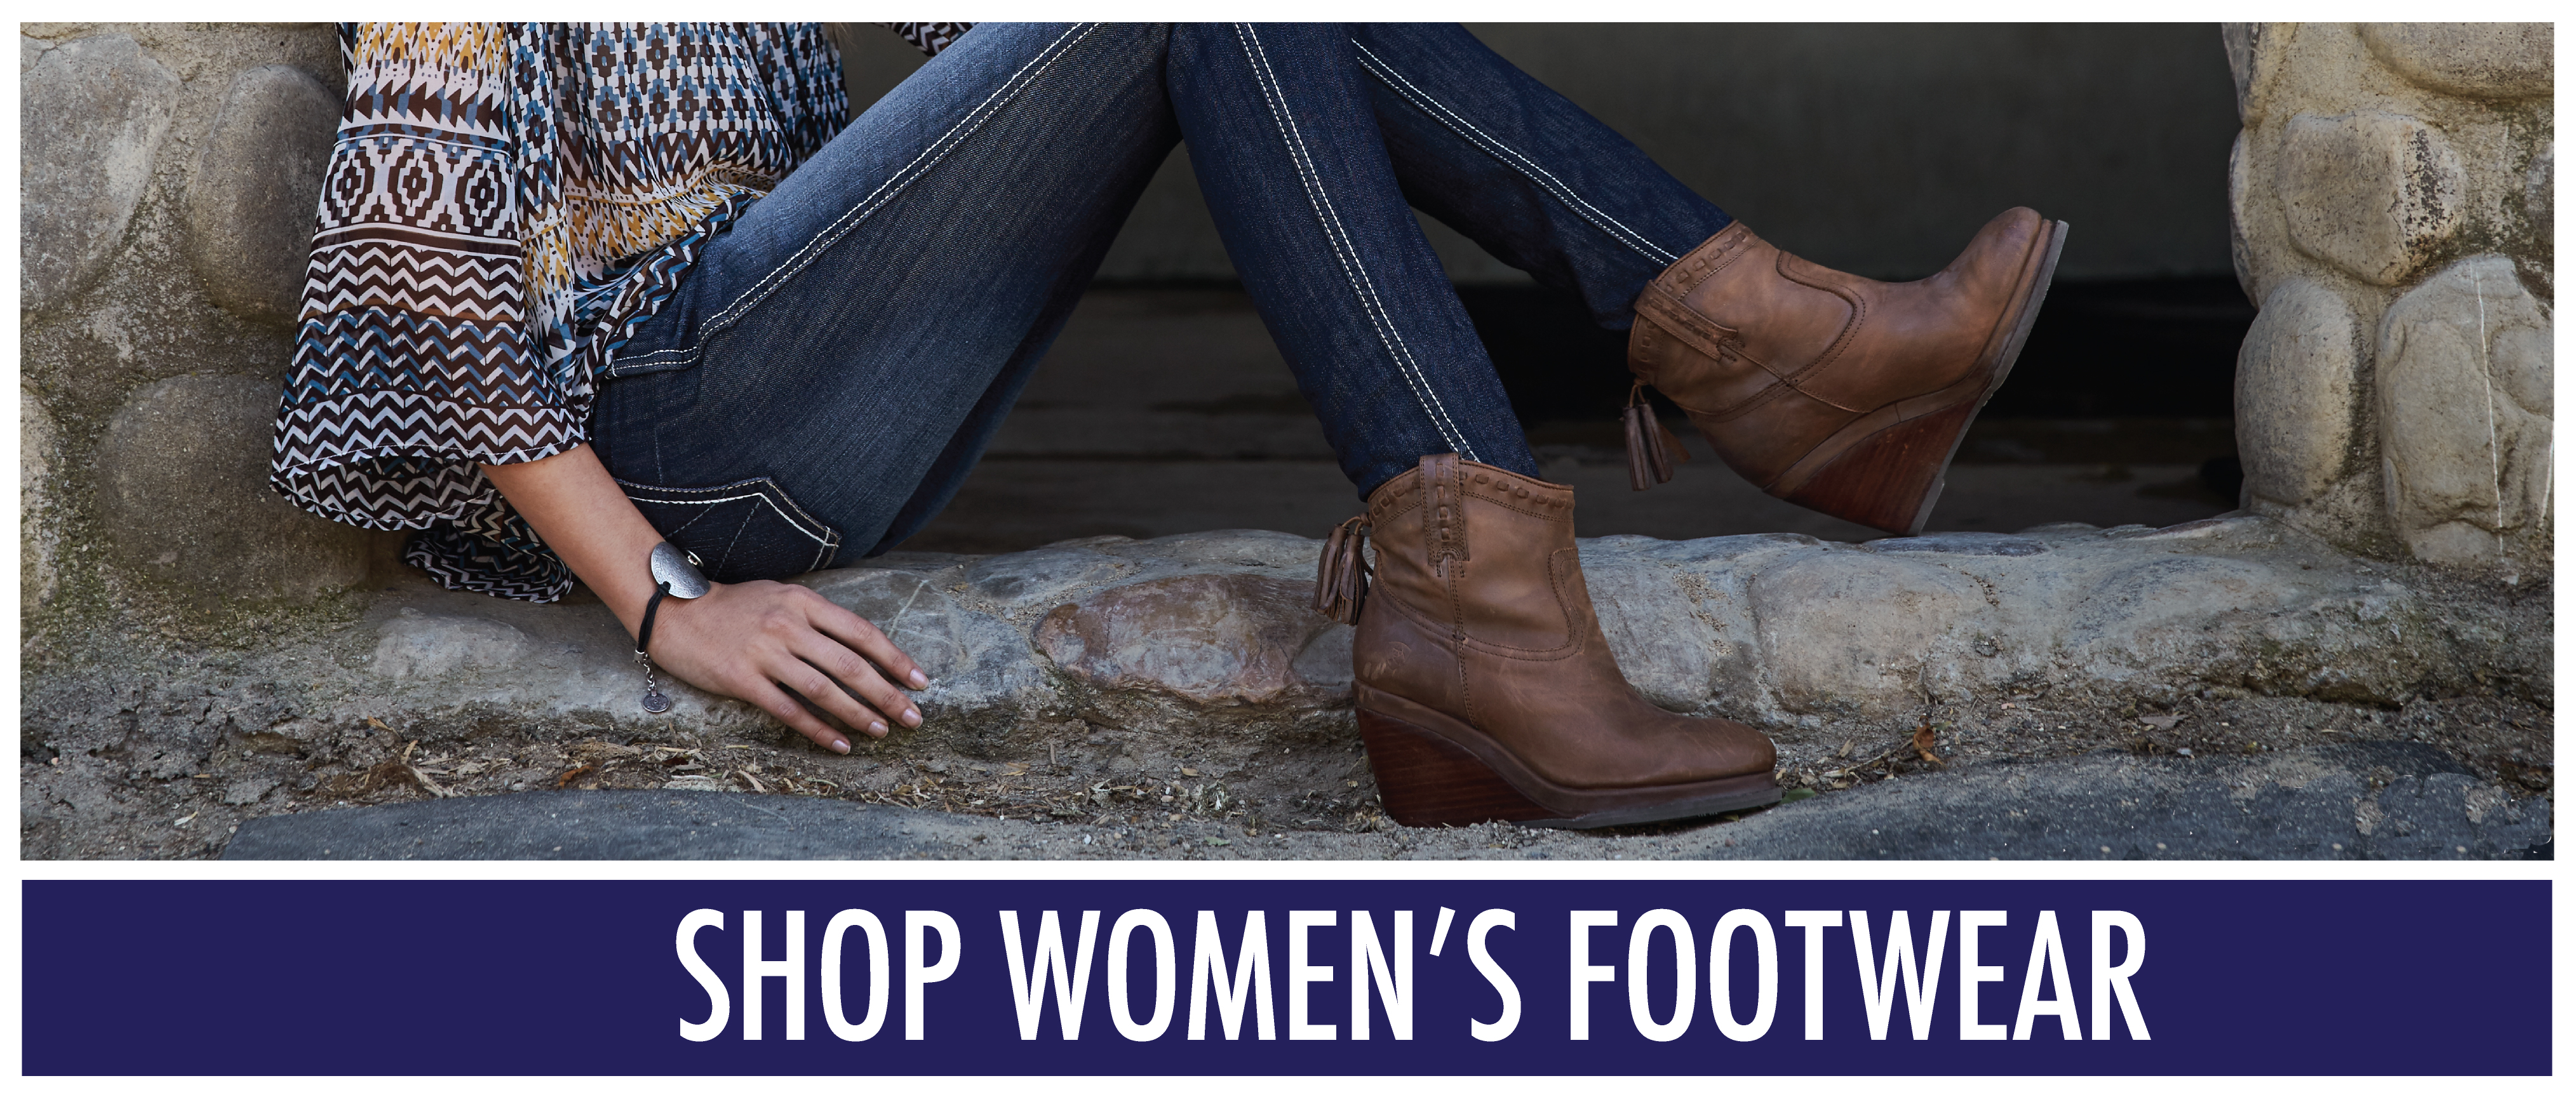 shop-women-s-footwear.jpg